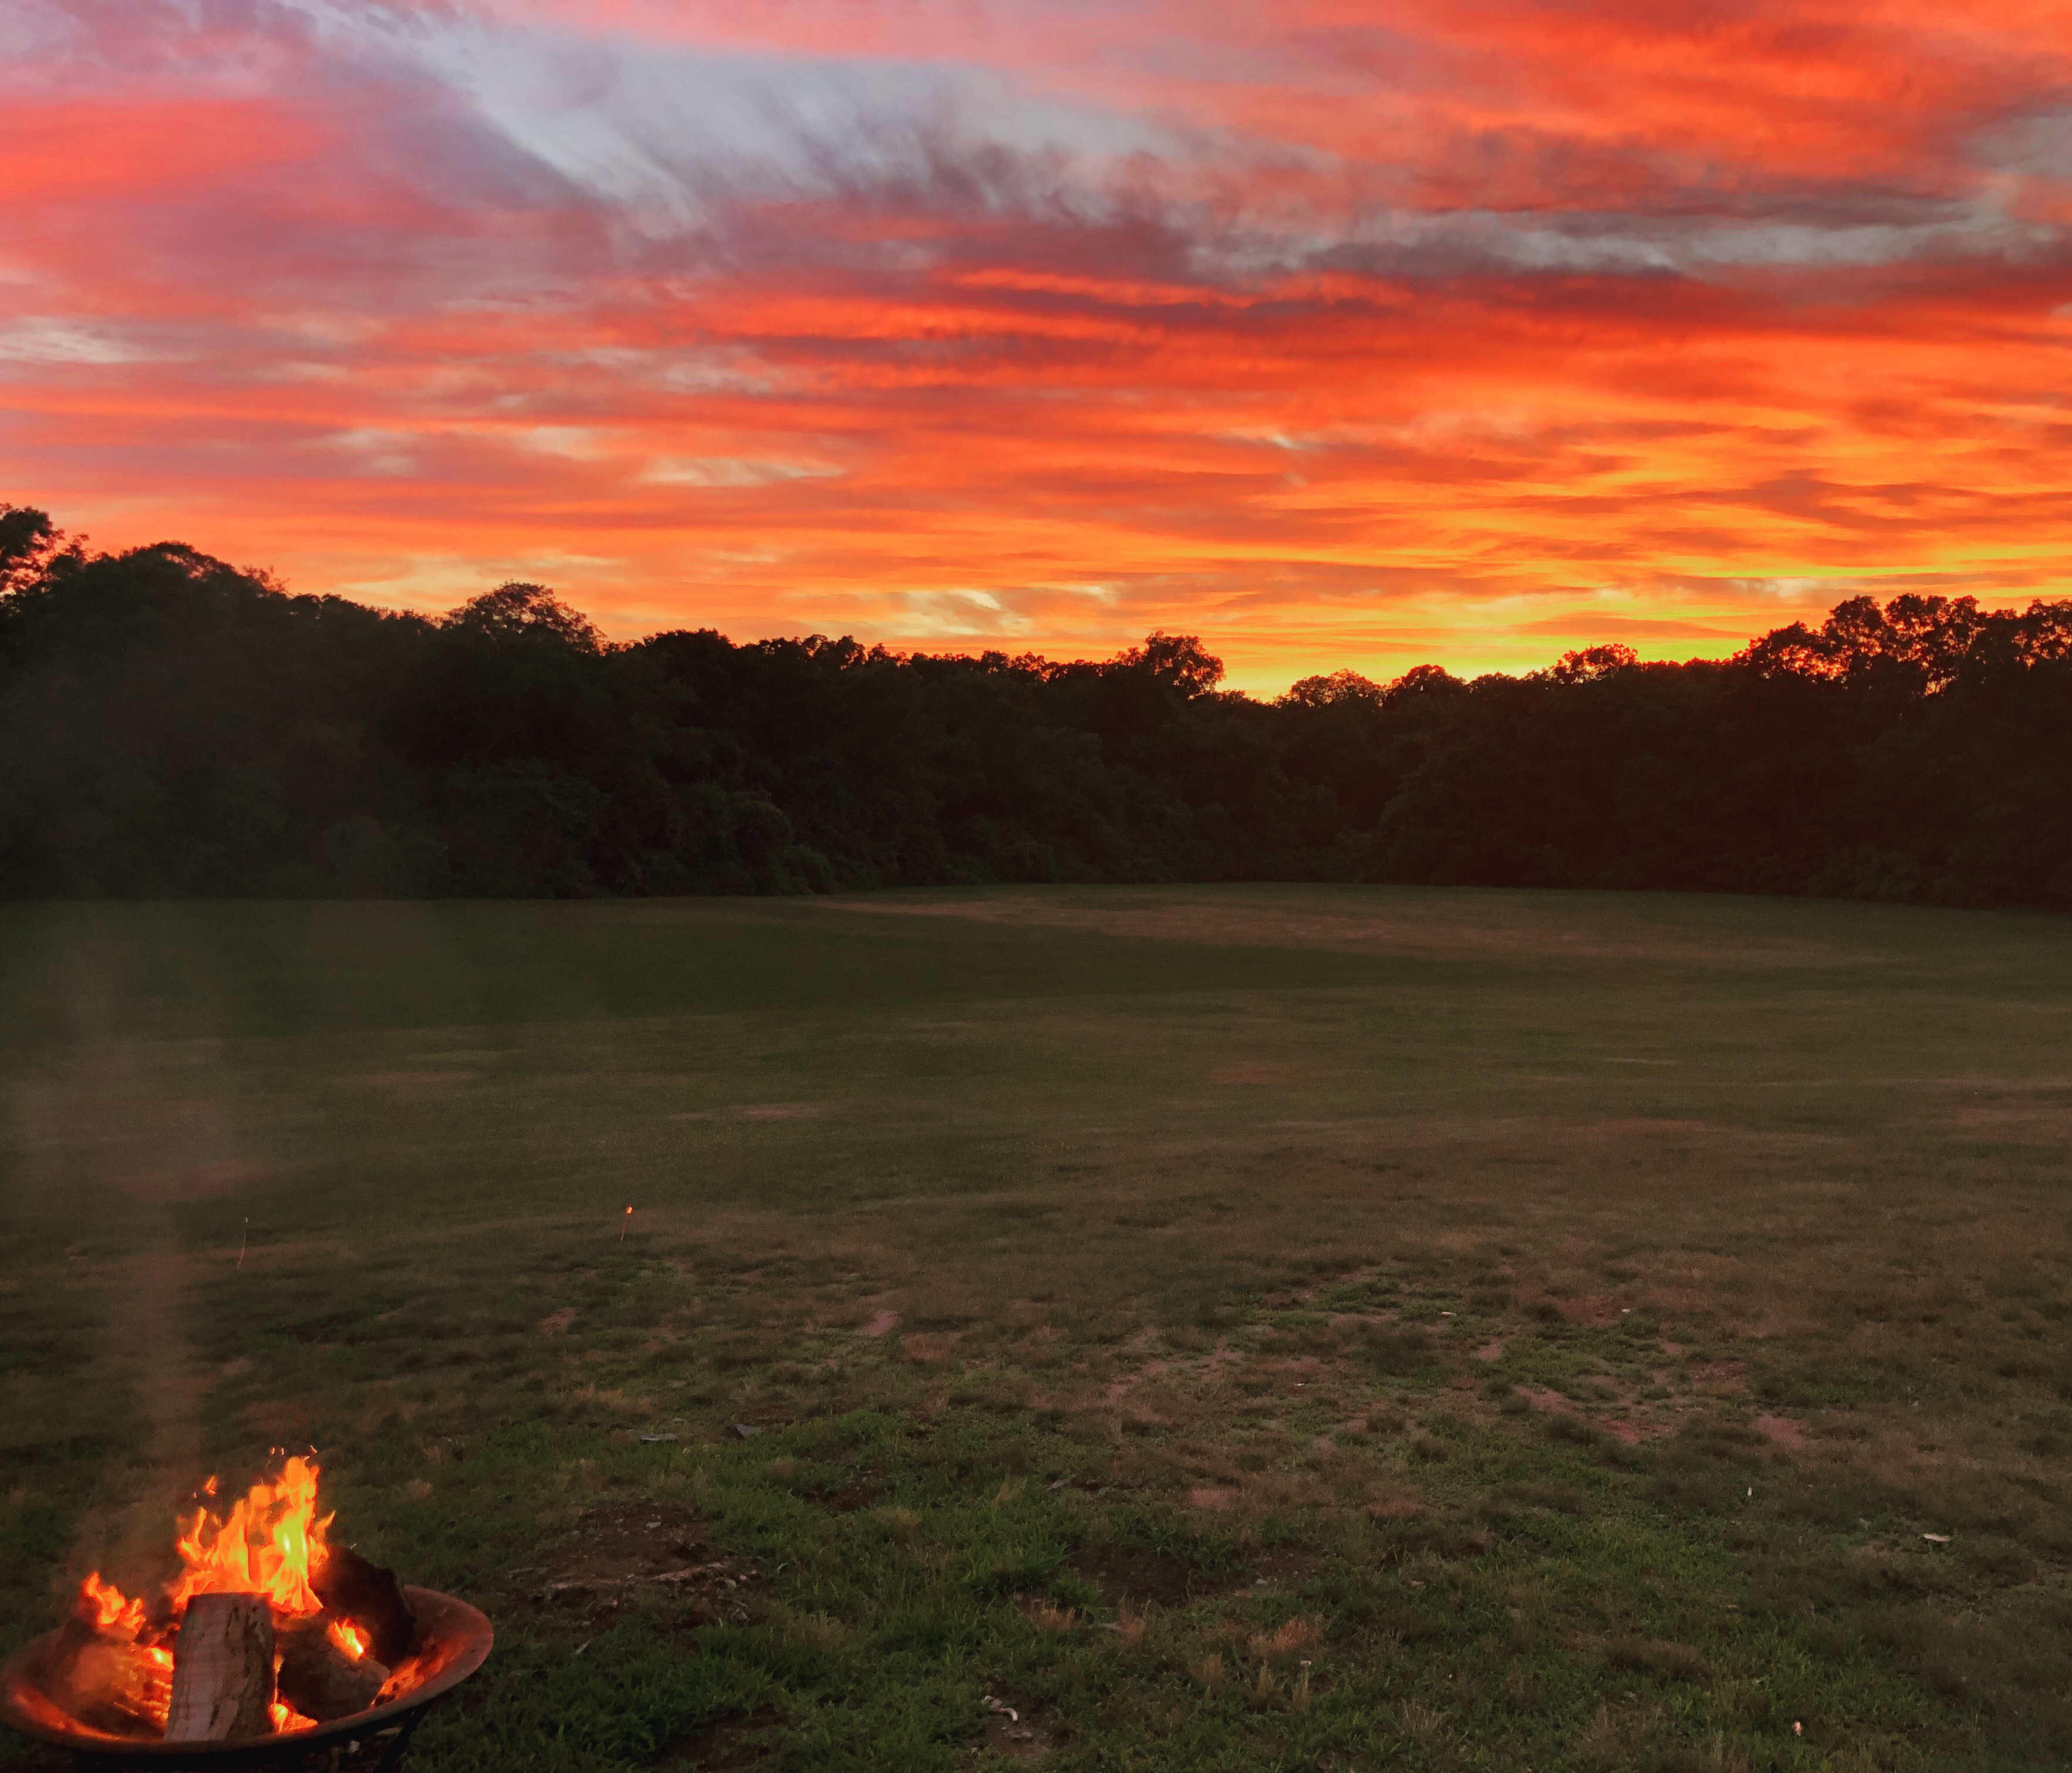 Summertime sunset at Faxon Farm